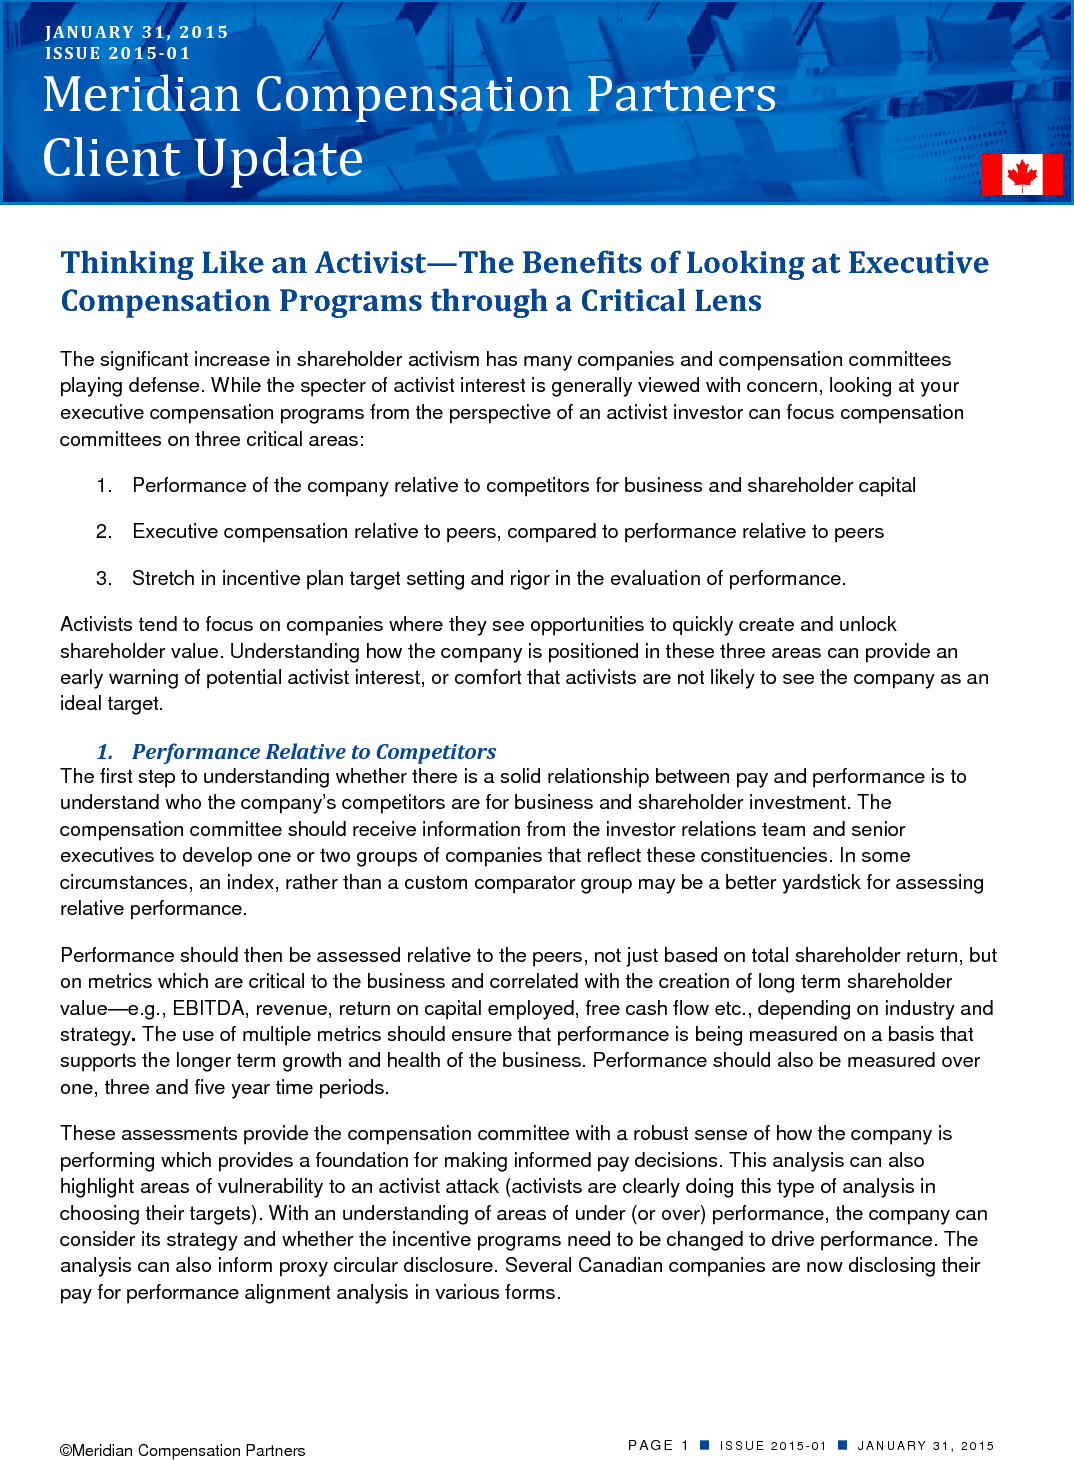 Thinking Like an Activist—The Benefits of Looking at Executive Compensation Programs through a Critical Lens (PDF)